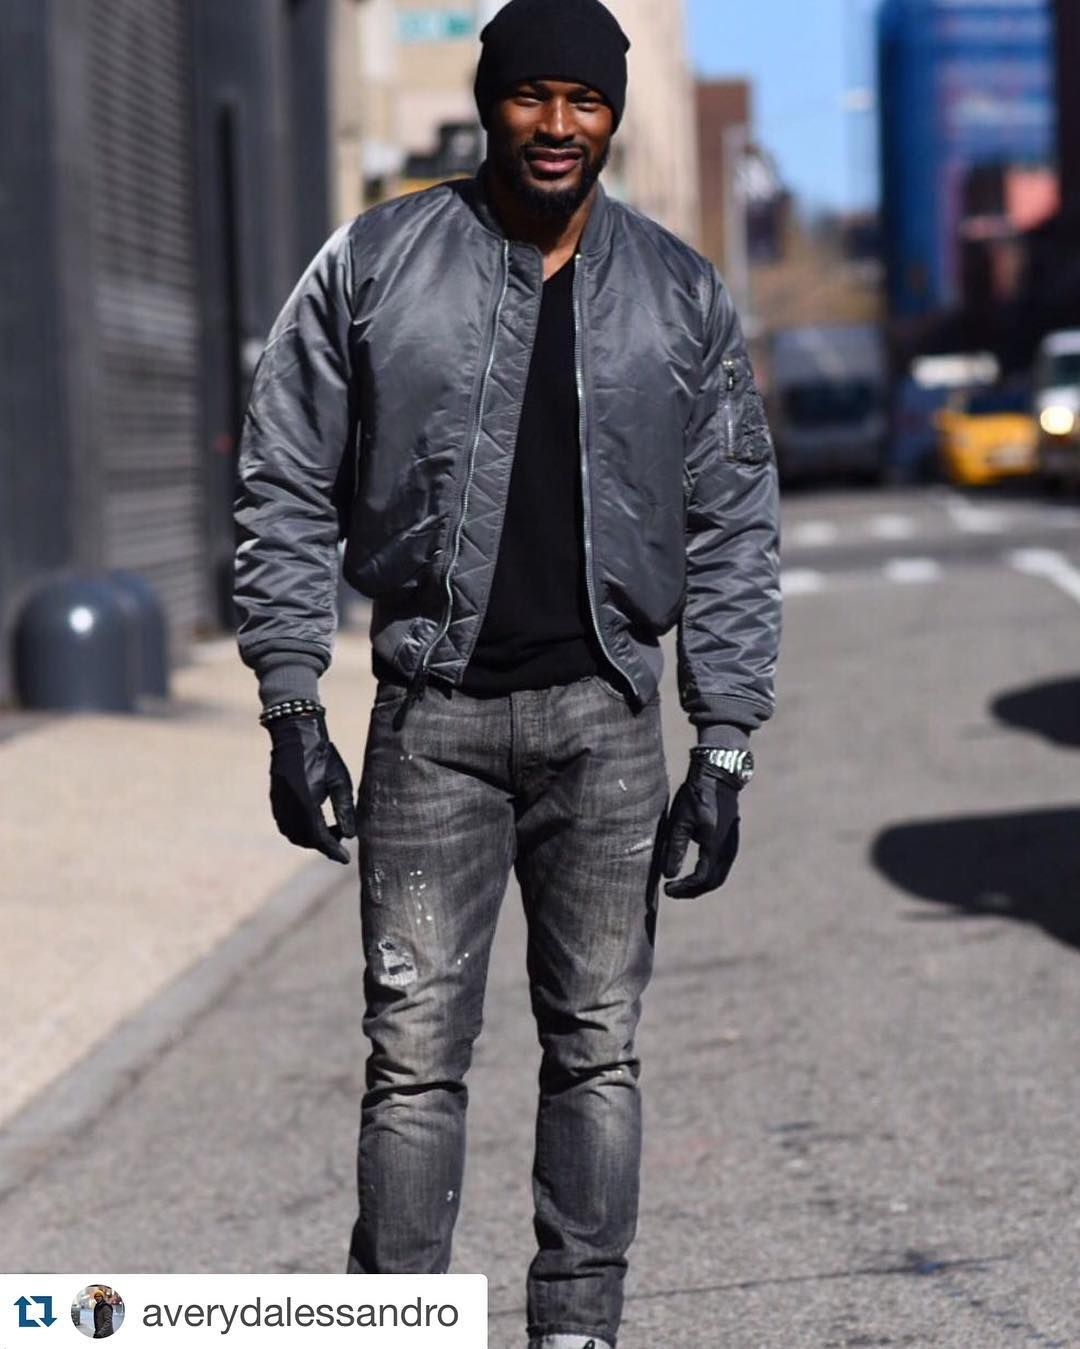 Model Tyson Beckford Wearing The Ma 1 Flight Jacket In Black On The Streets Of New York